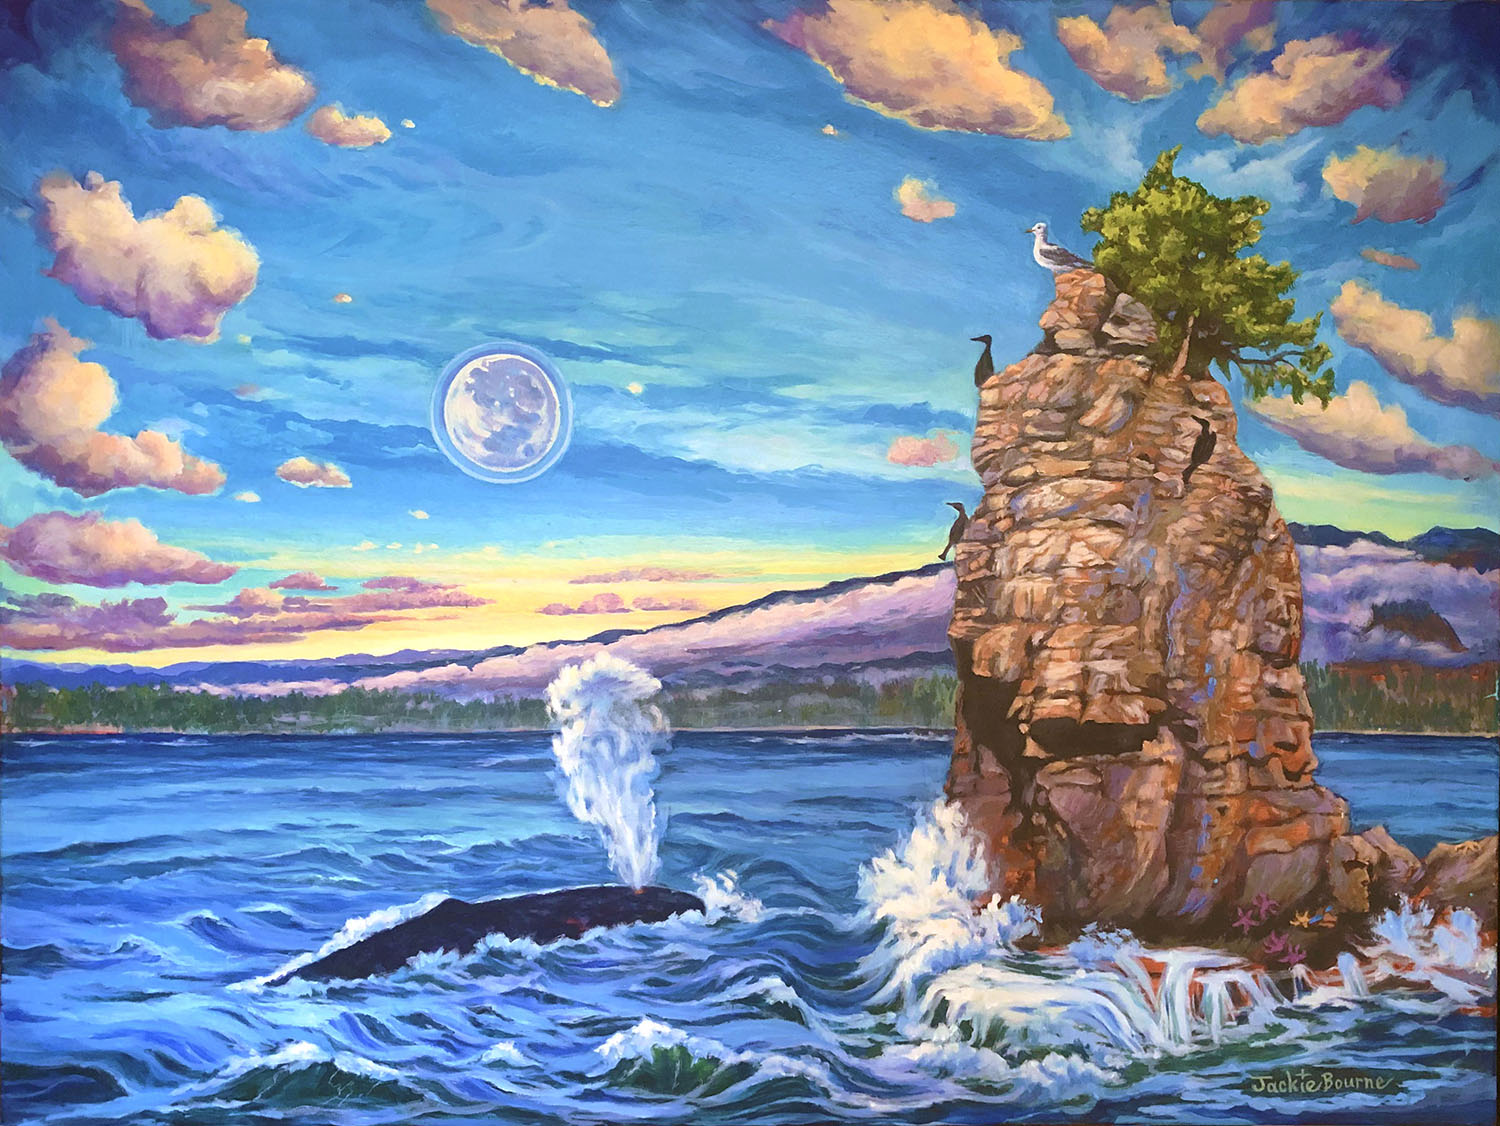 grey-whale-and-rock-in-ocean-painting-moon